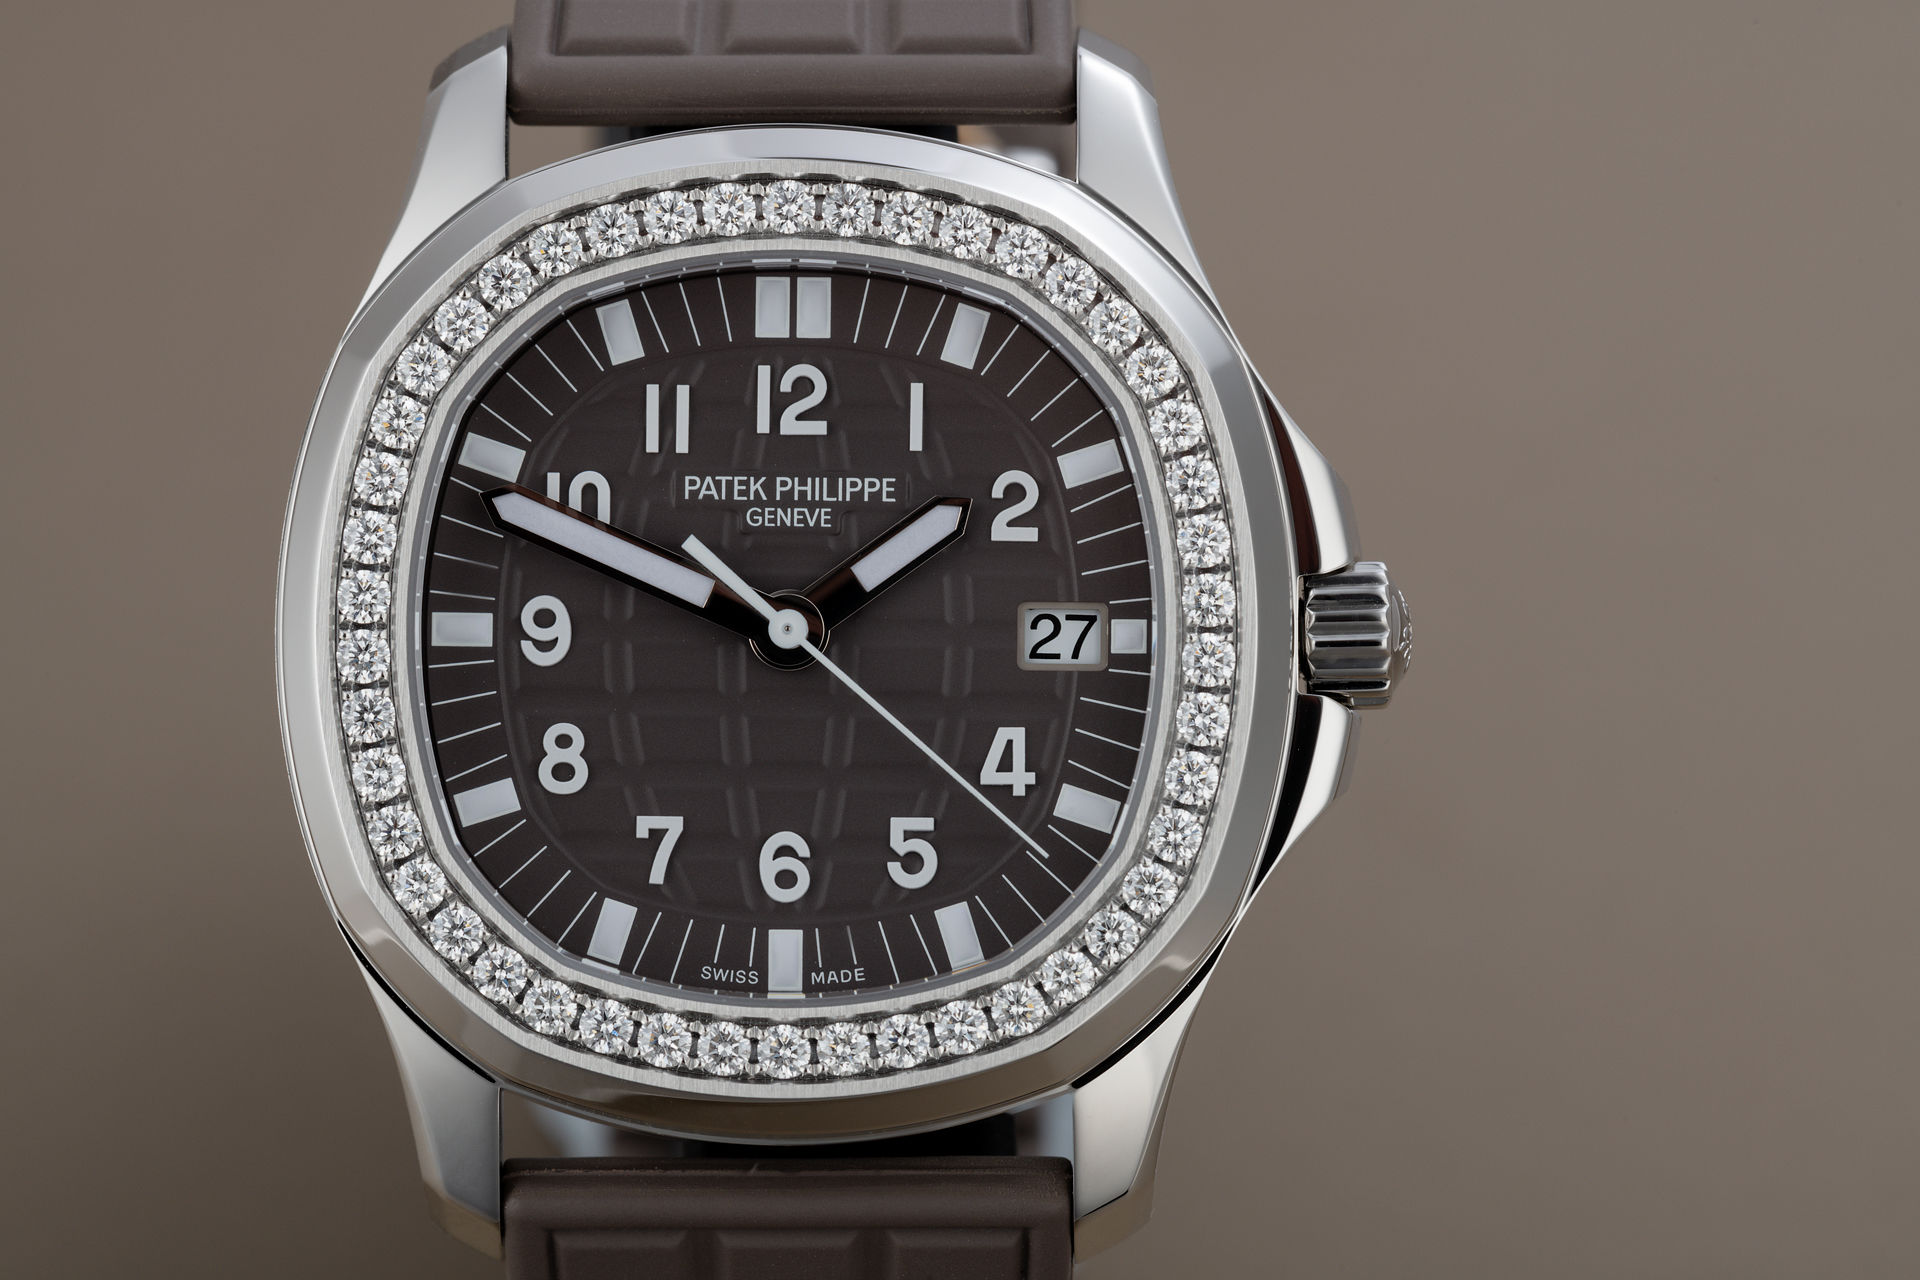 ref 5067A-023 | Brand New 2019 Model | Patek Philippe Aquanaut Luce